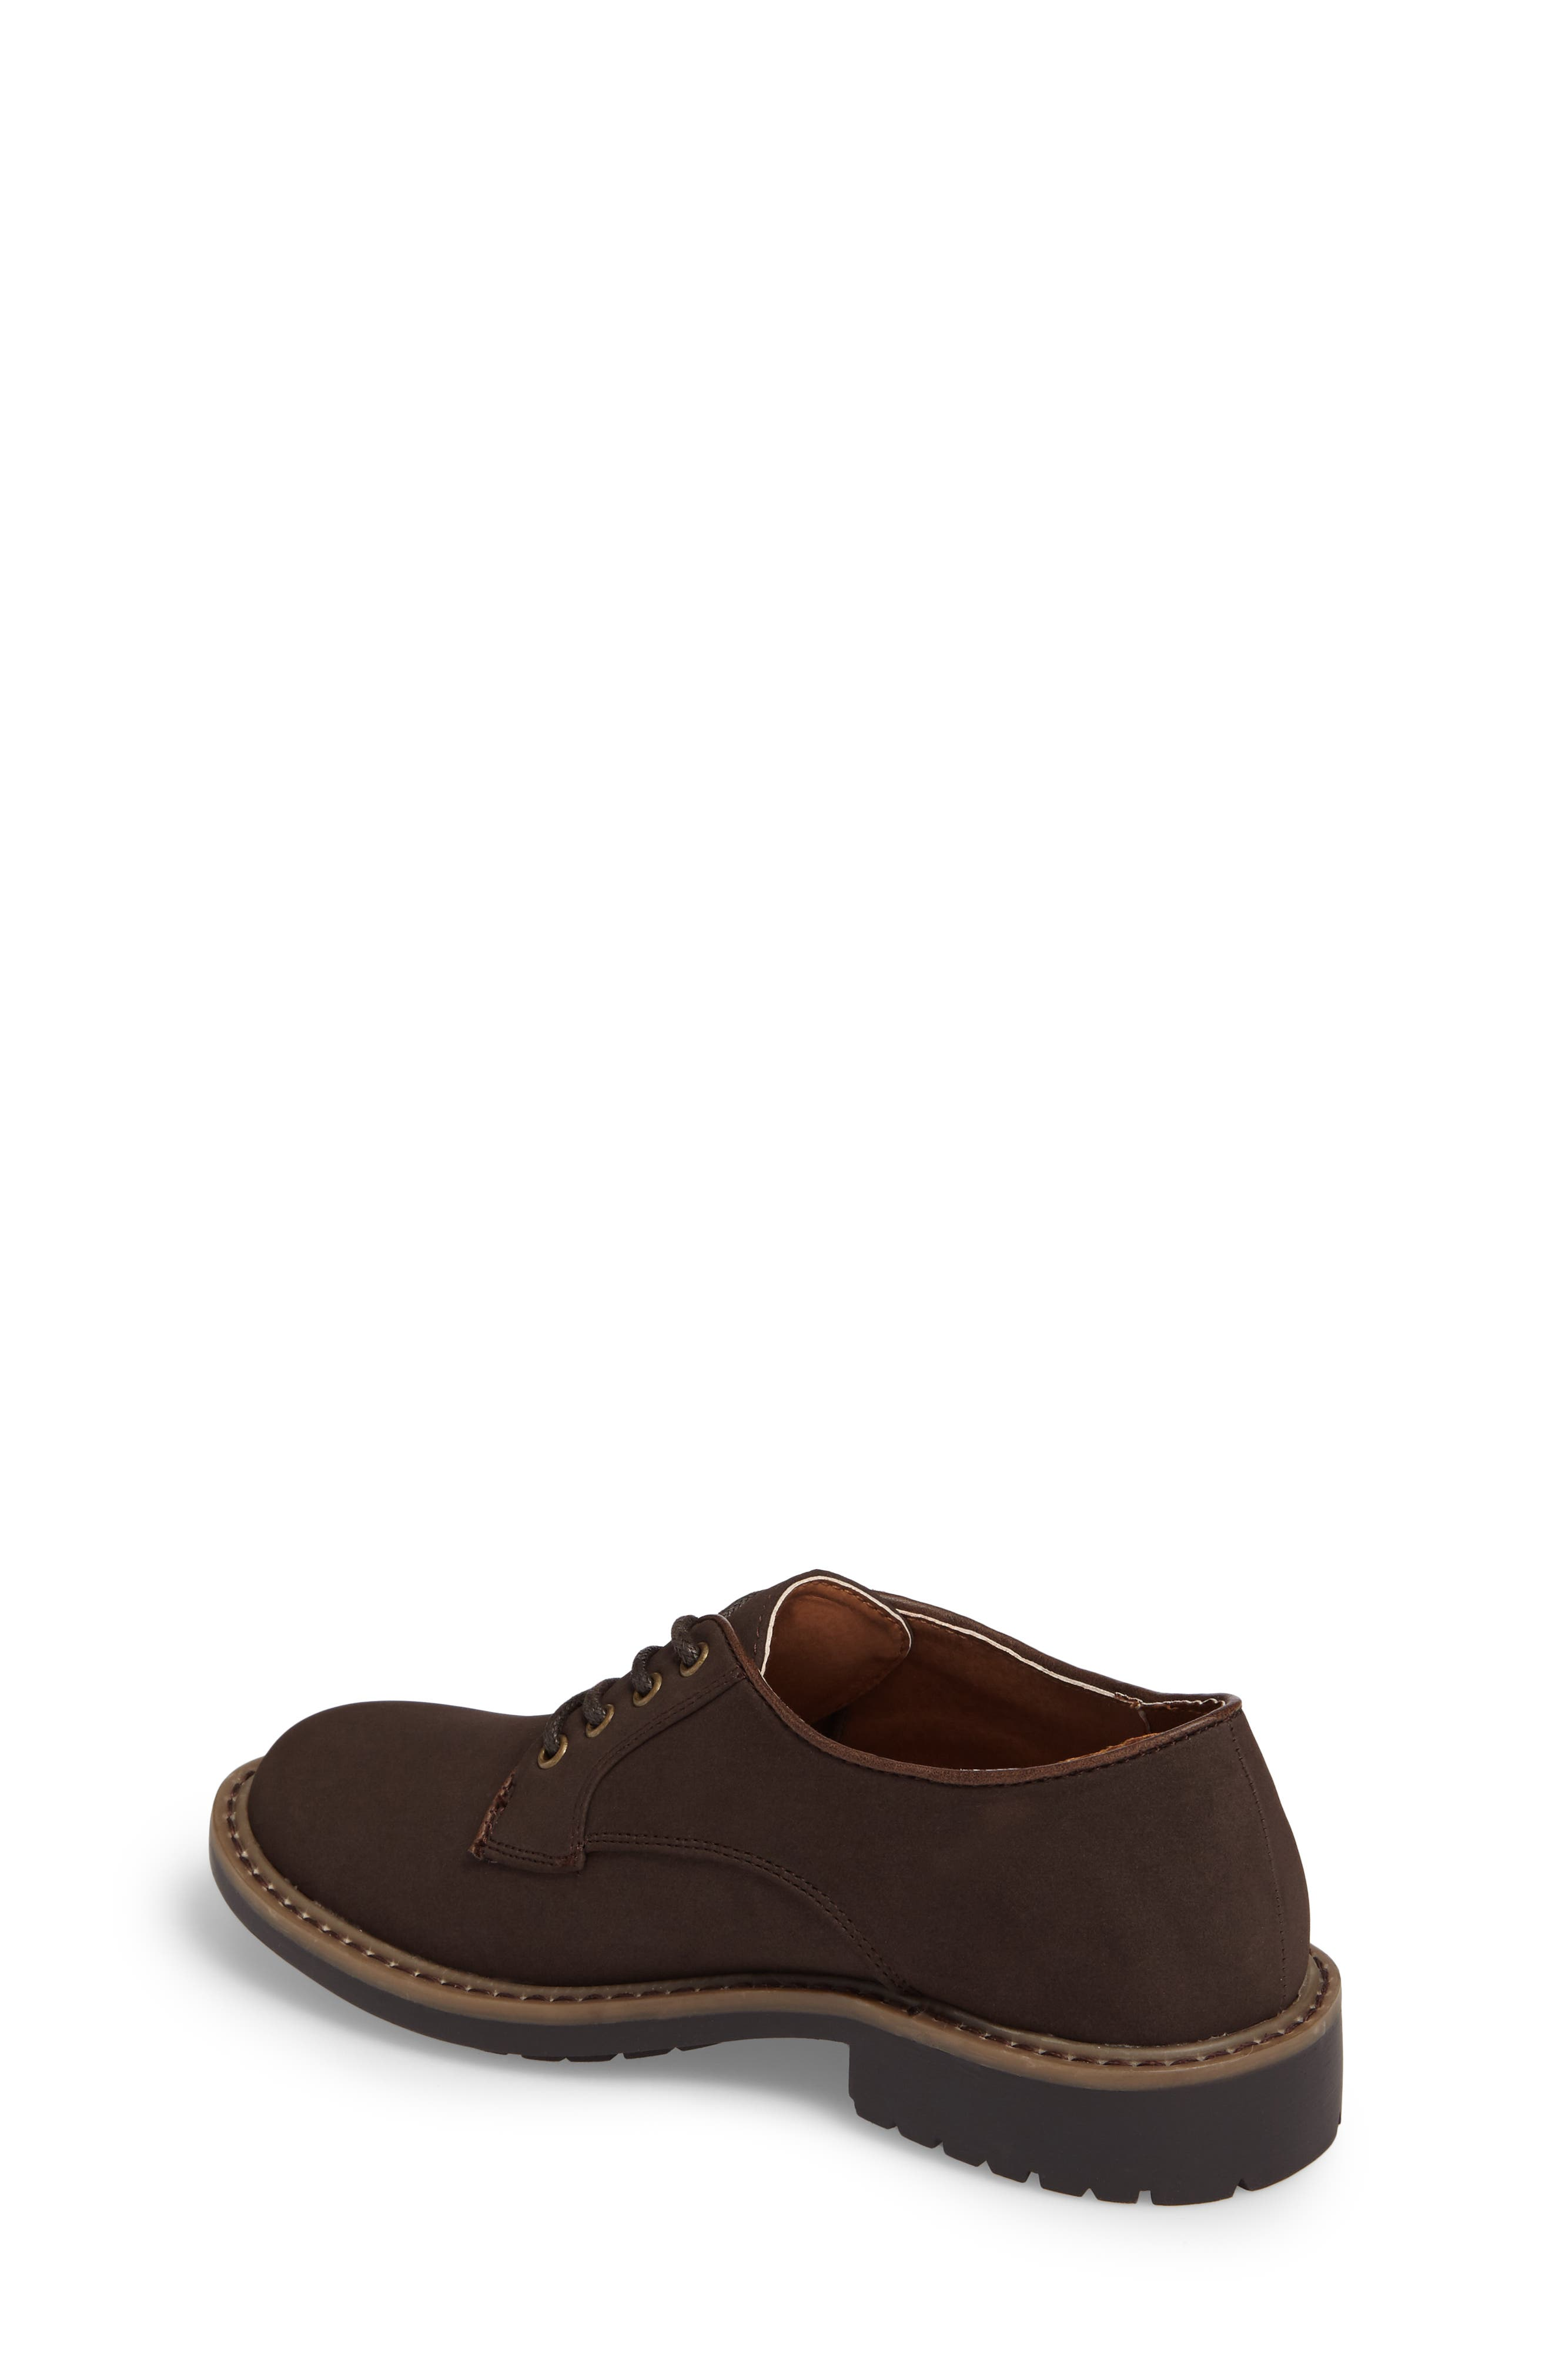 Kenneth Cole New York Take Buck Oxford,                             Alternate thumbnail 2, color,                             233